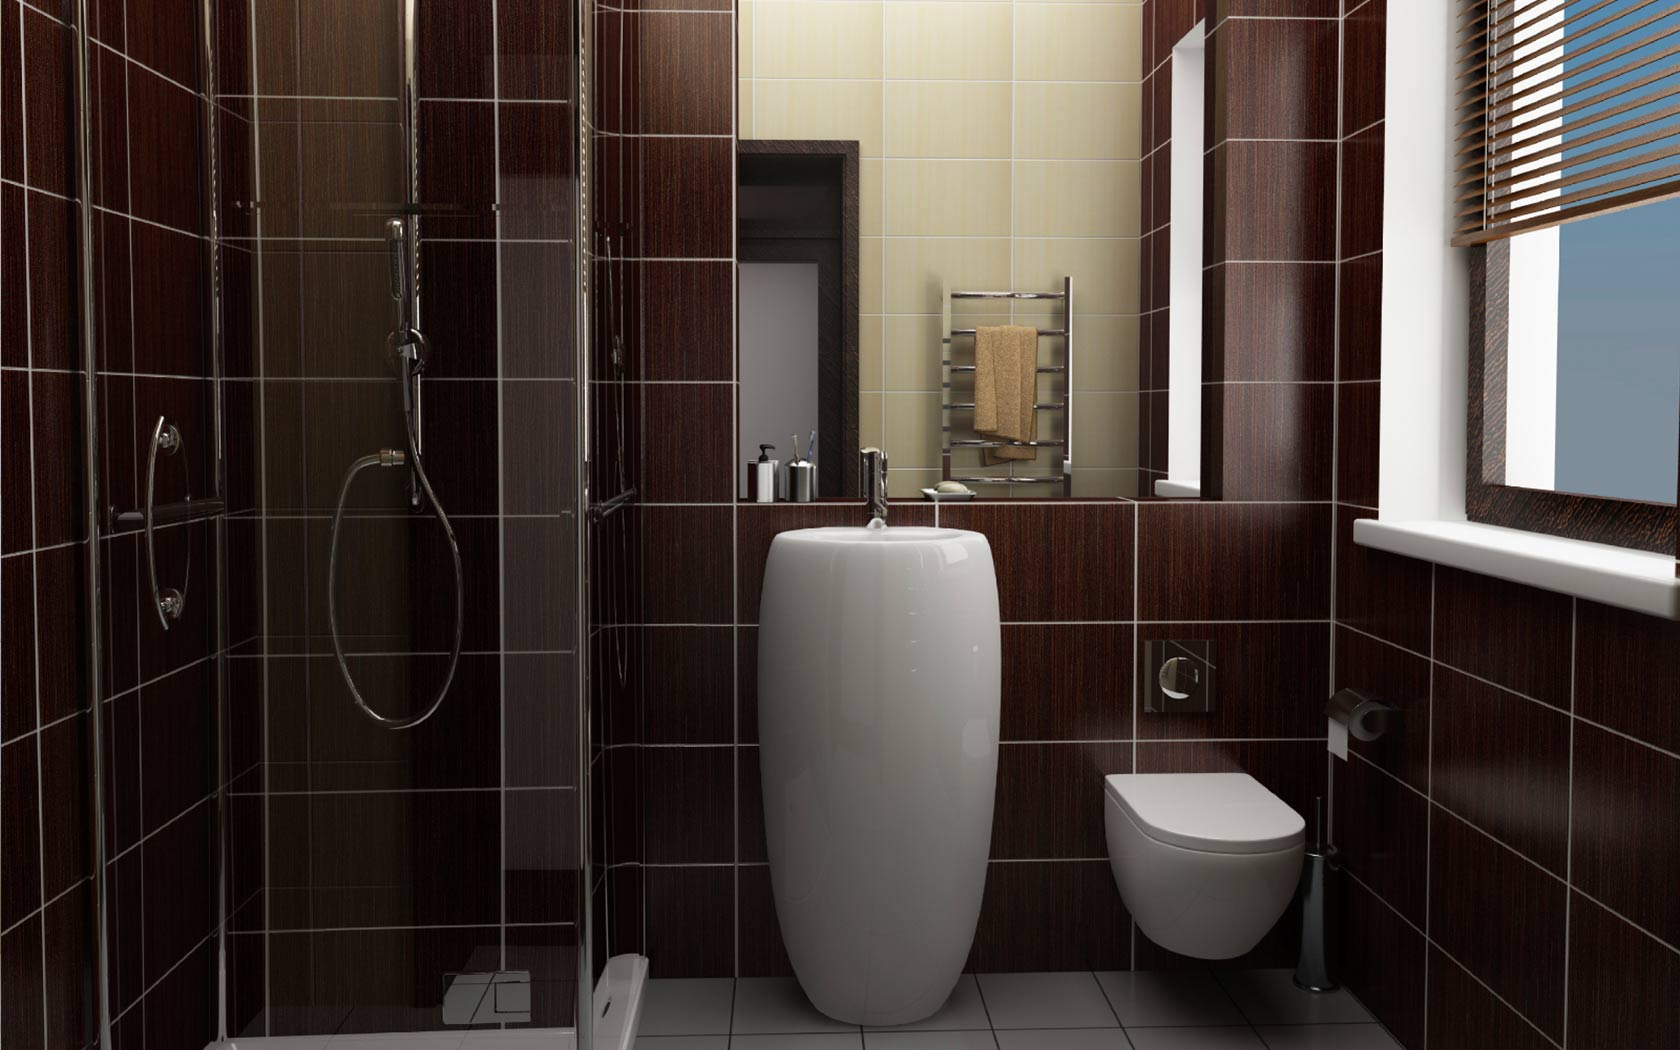 Original Contract Supply For Tiles Luxury Bathrooms And Granite Or Quartz